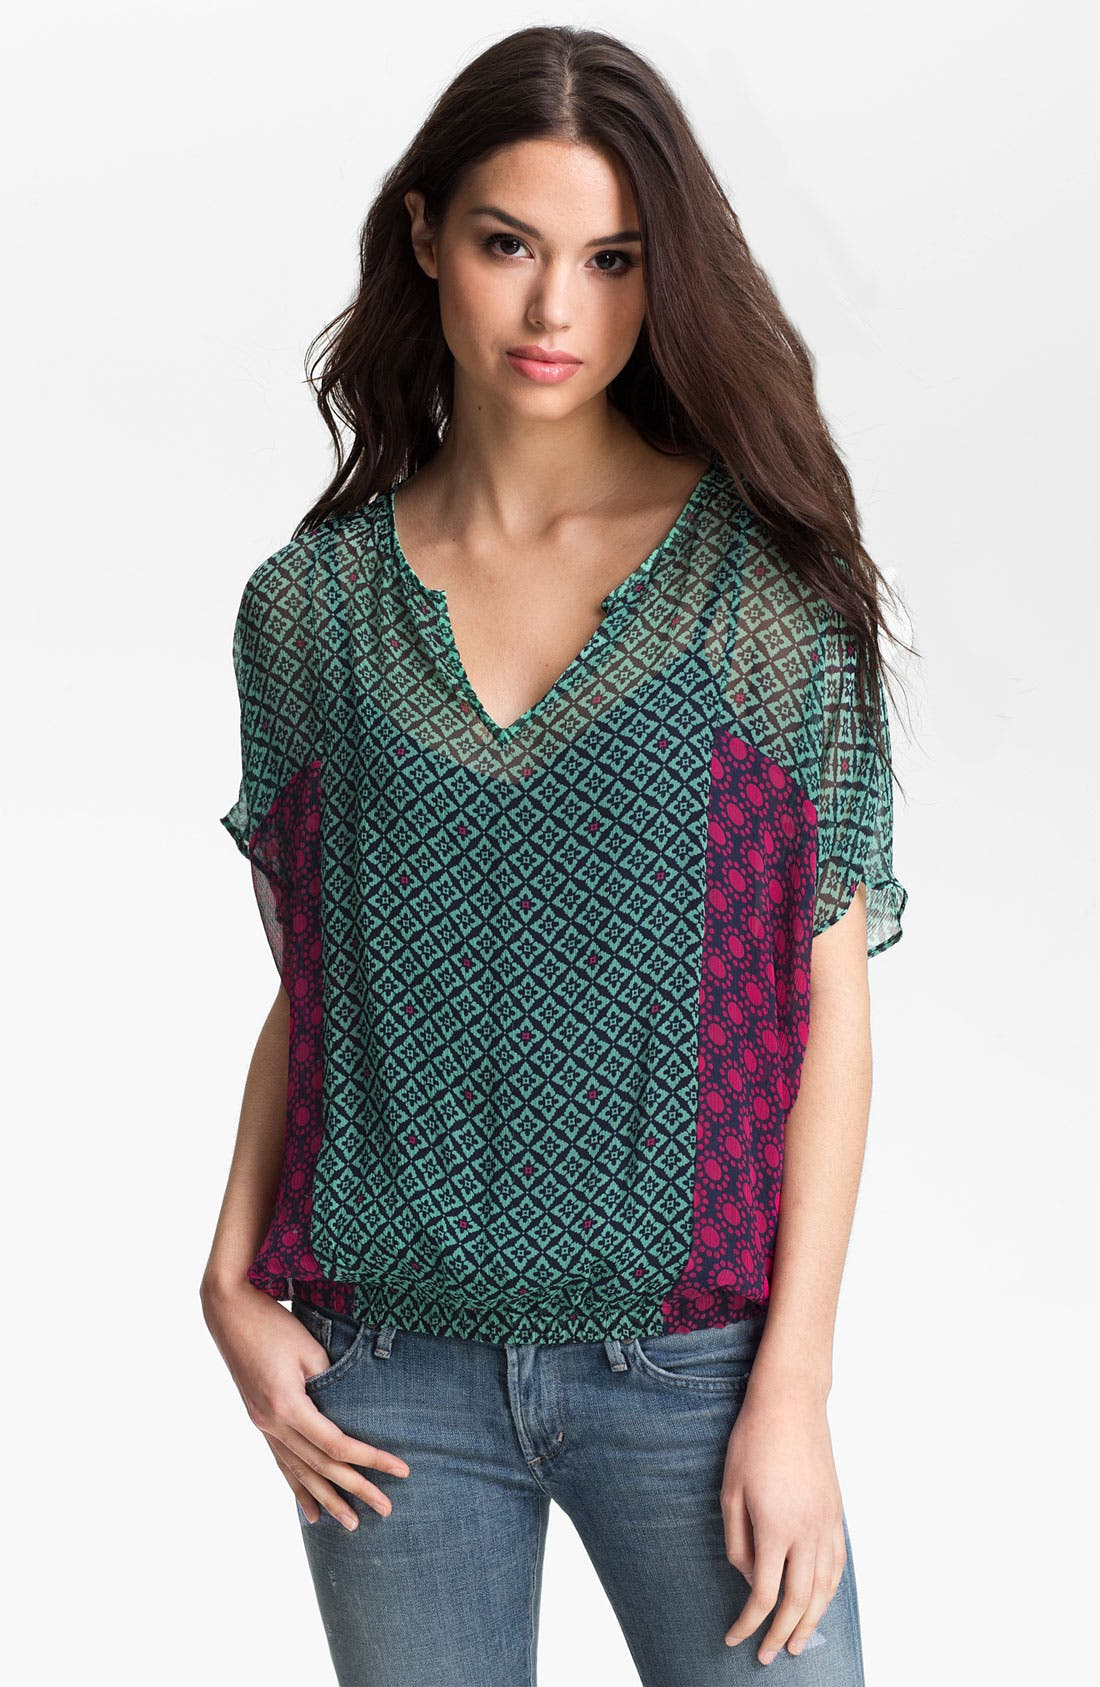 Alternate Image 1 Selected - Ella Moss 'Sun Tile' Mix Print Top